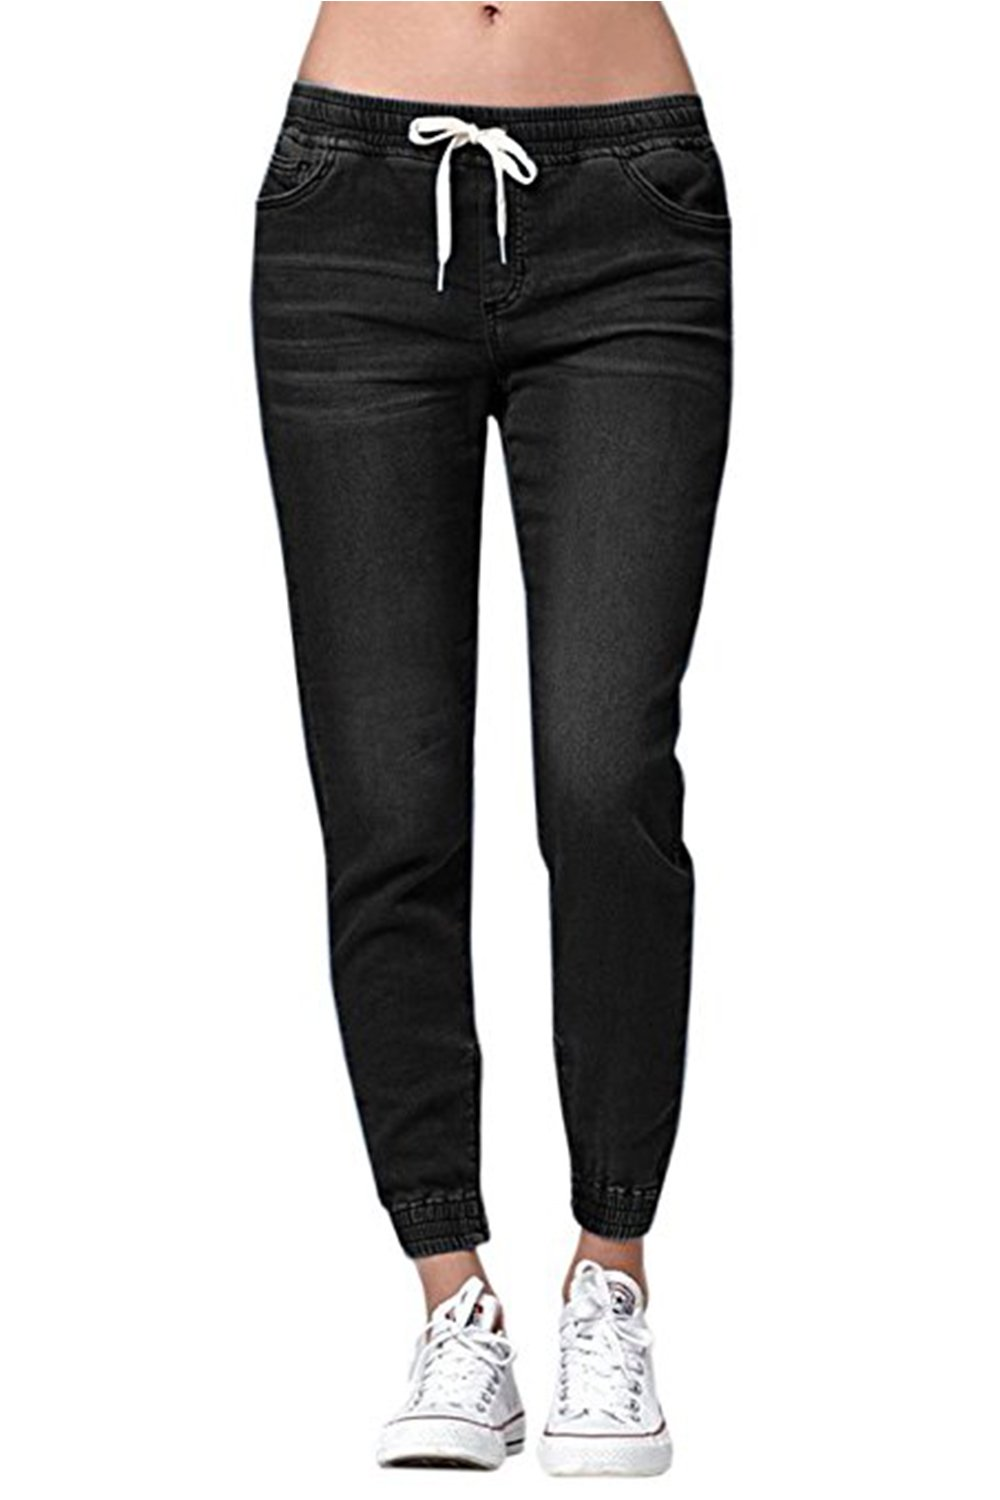 Womens Jogger Denim Jeans Elastic Drawstring Waisted Stretchy Classic Pants